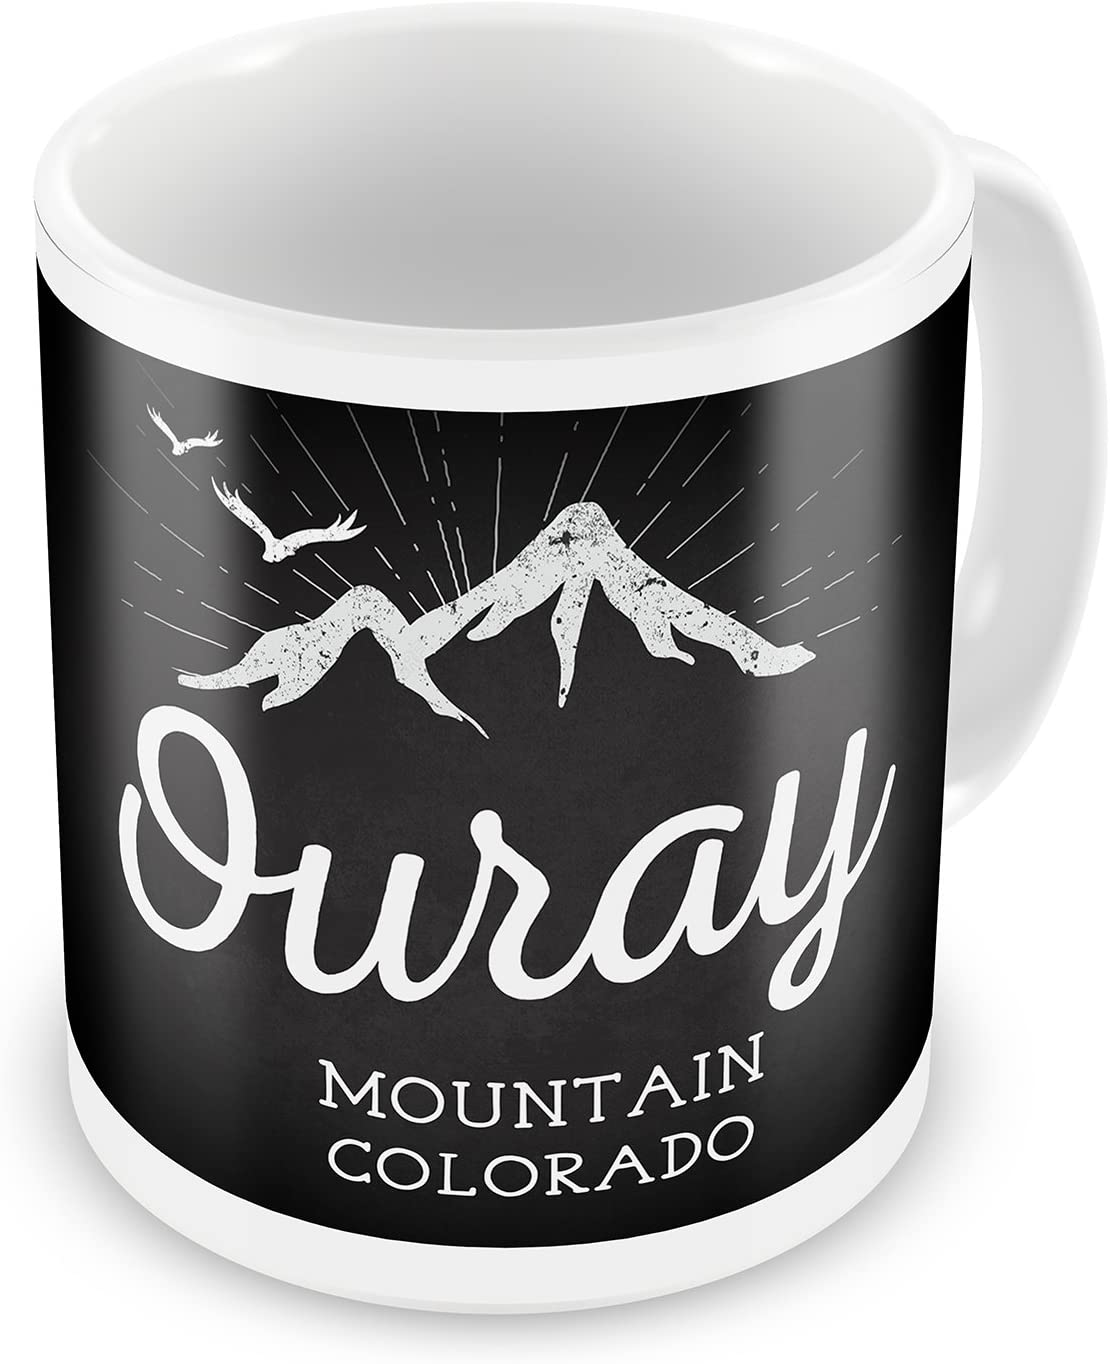 Coffee Mug Mountains Chalkboard Ouray Mountain Colorado Neonblond Kitchen Dining